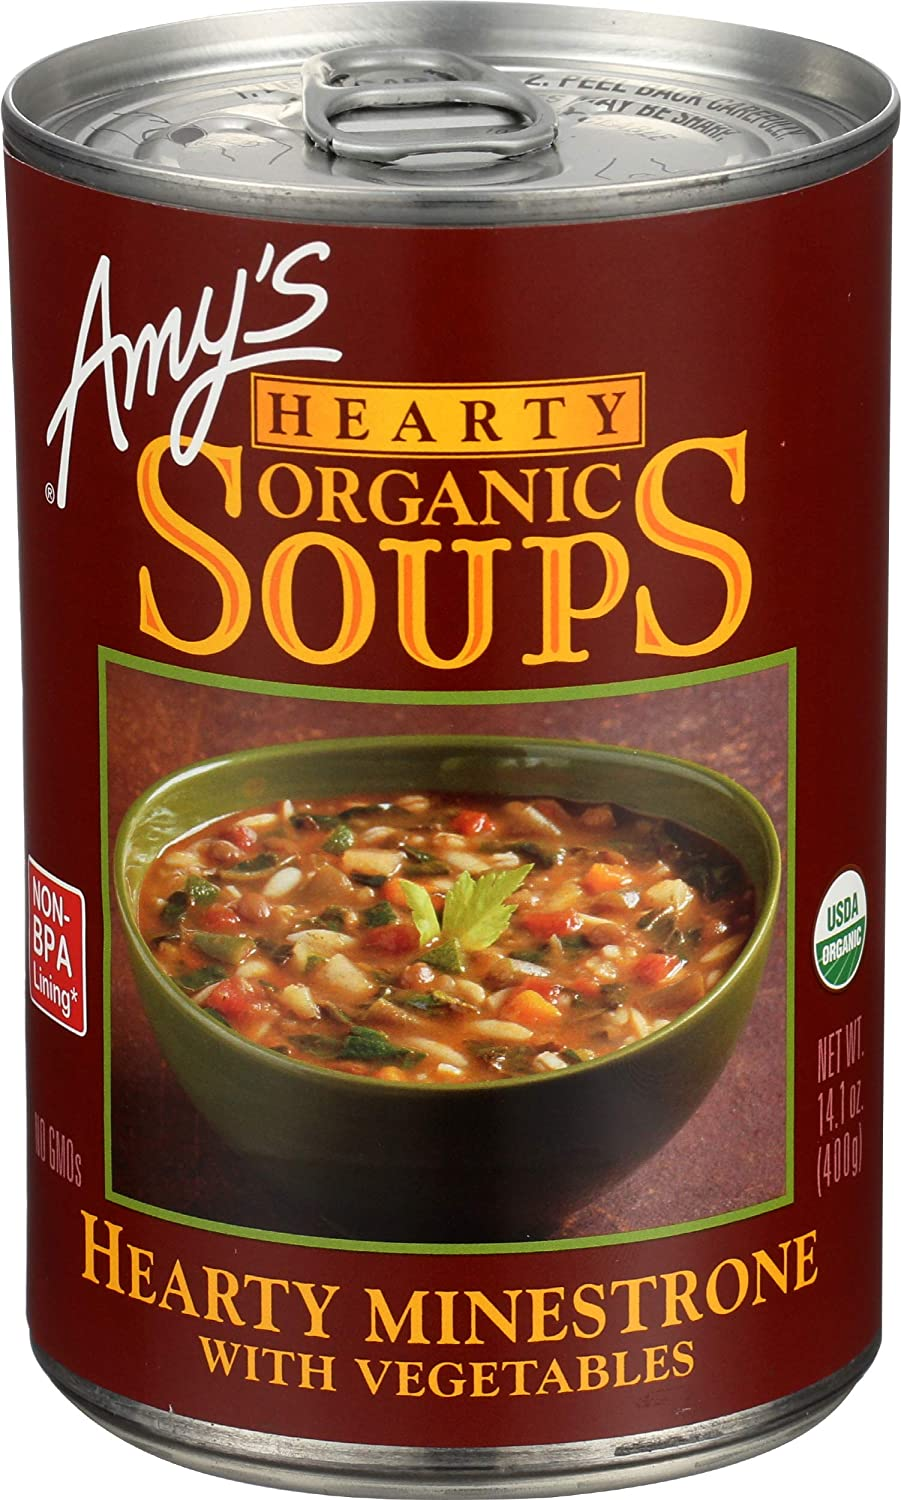 Amy's Soup, Vegan, Organic Hearty Minestrone (Pasta, Beans and Veggies) 14.1 oz